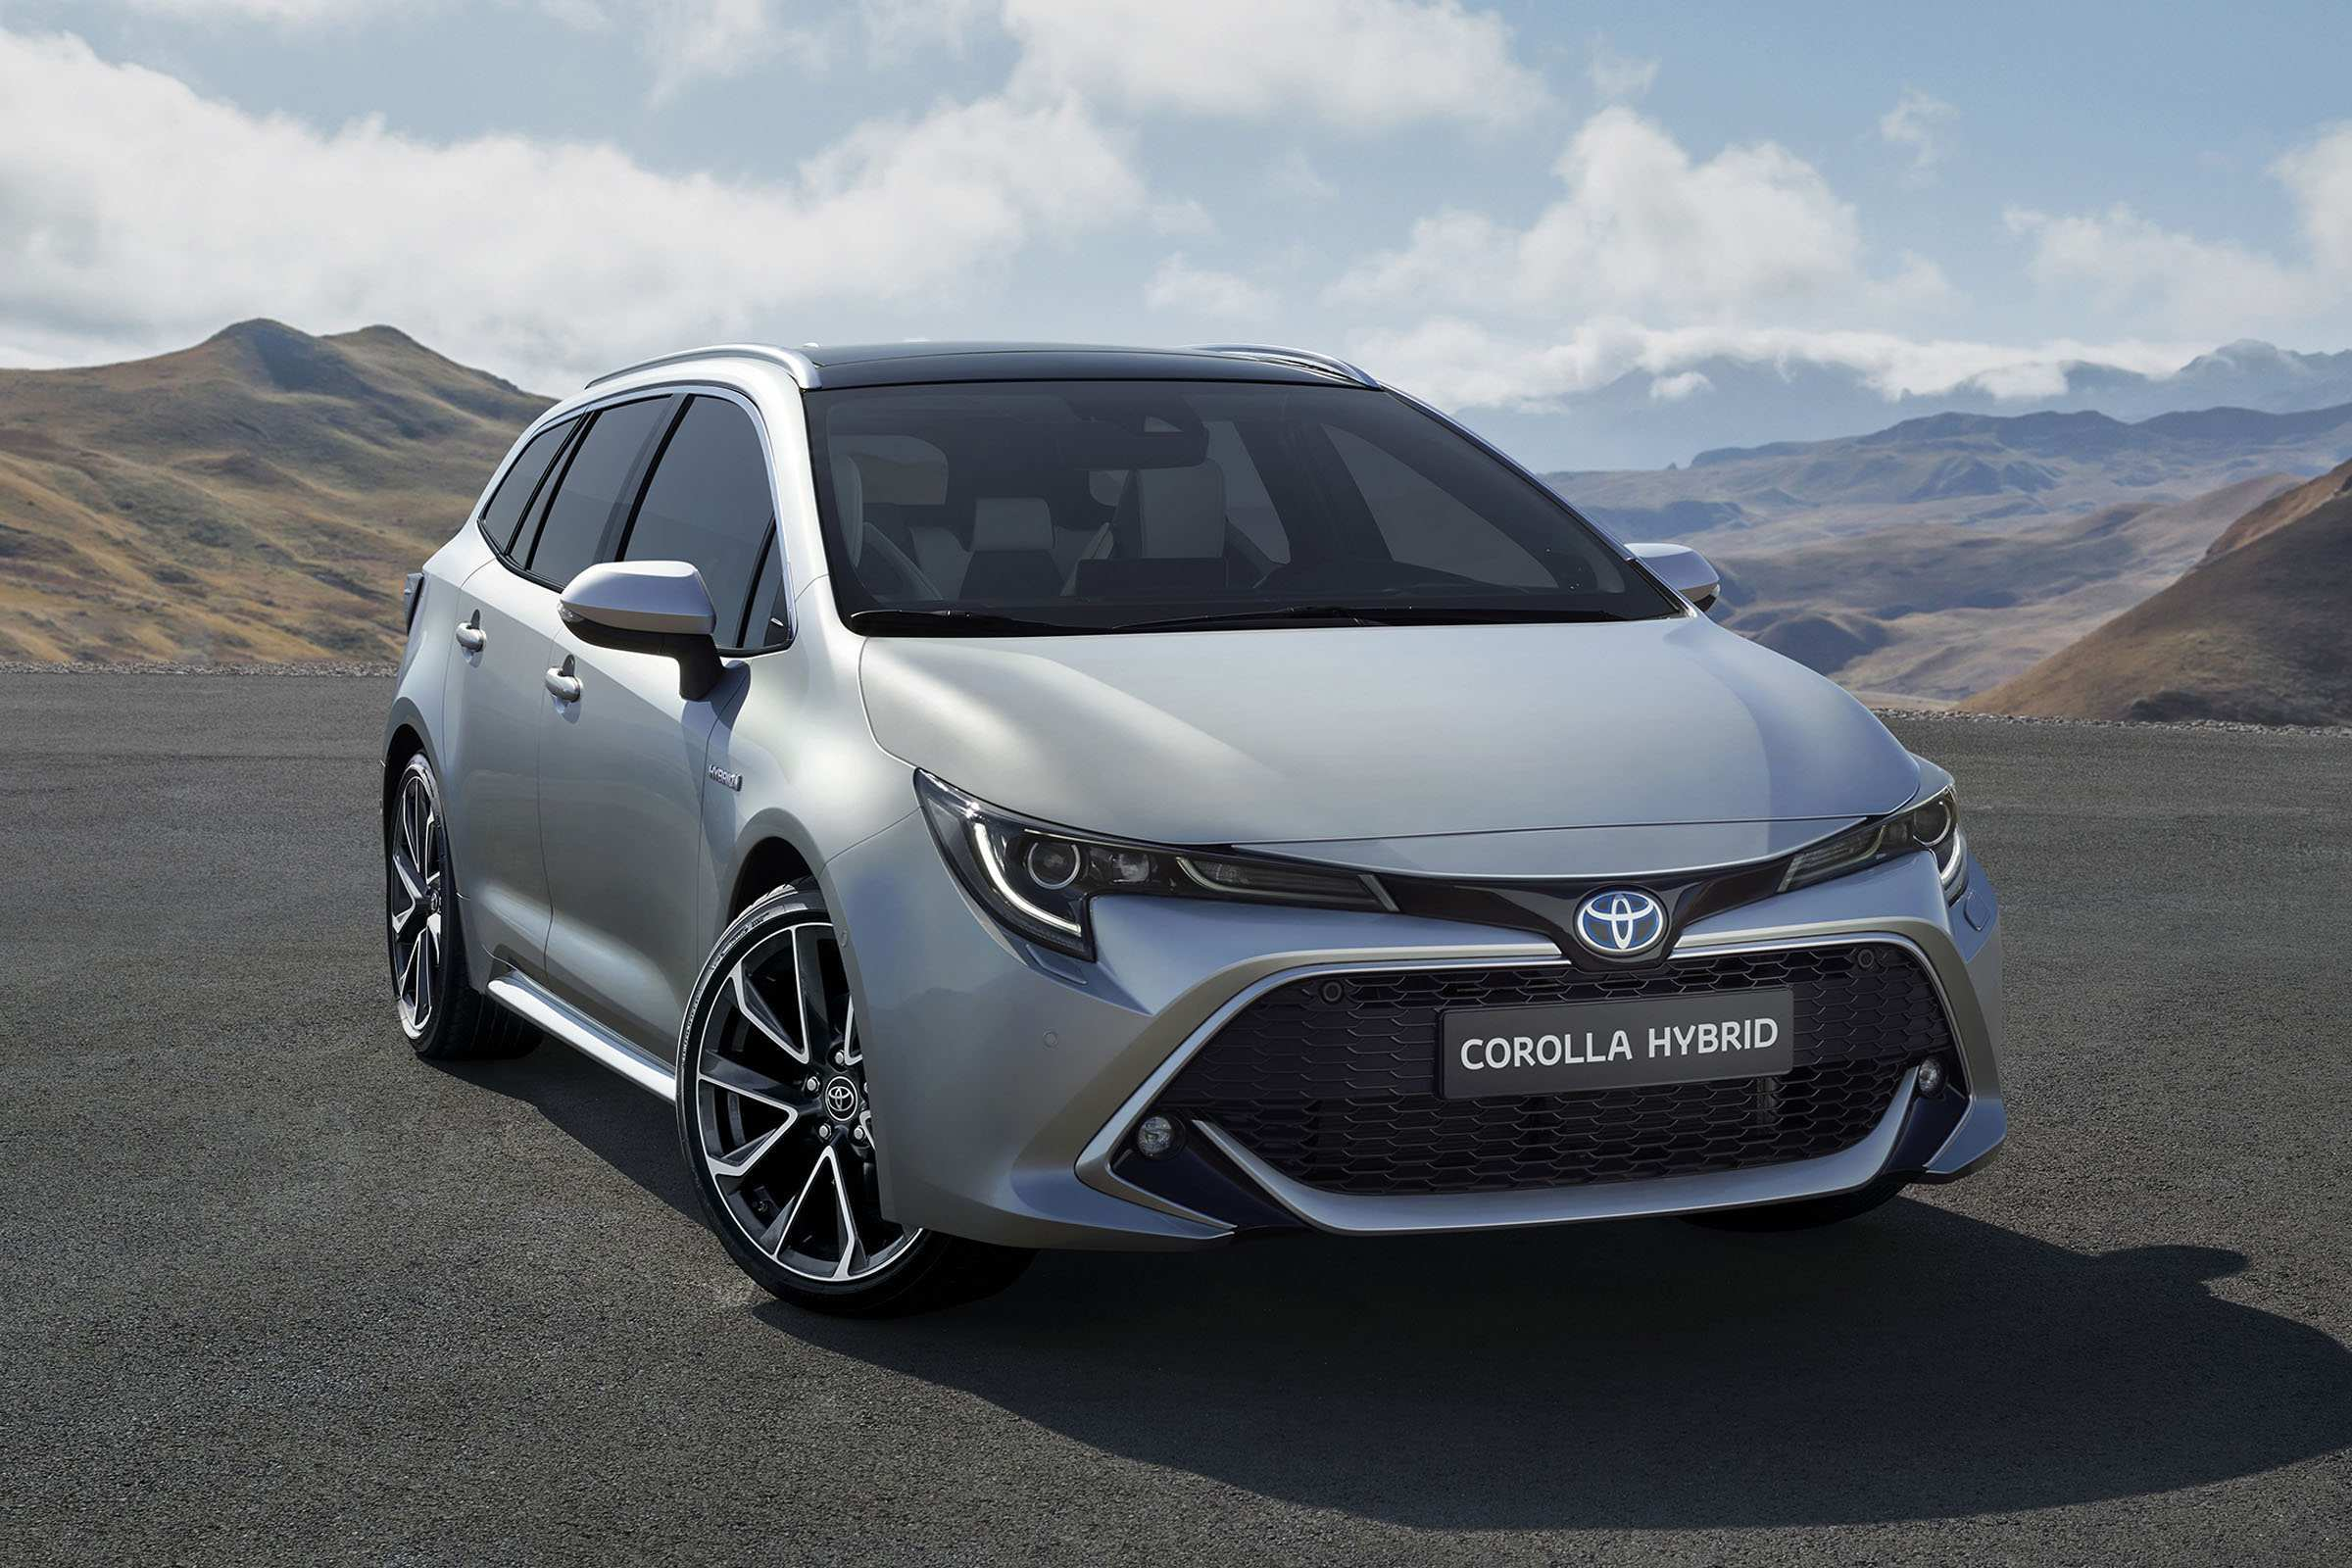 14 New Toyota 2019 Release Date Spy Shoot by Toyota 2019 Release Date